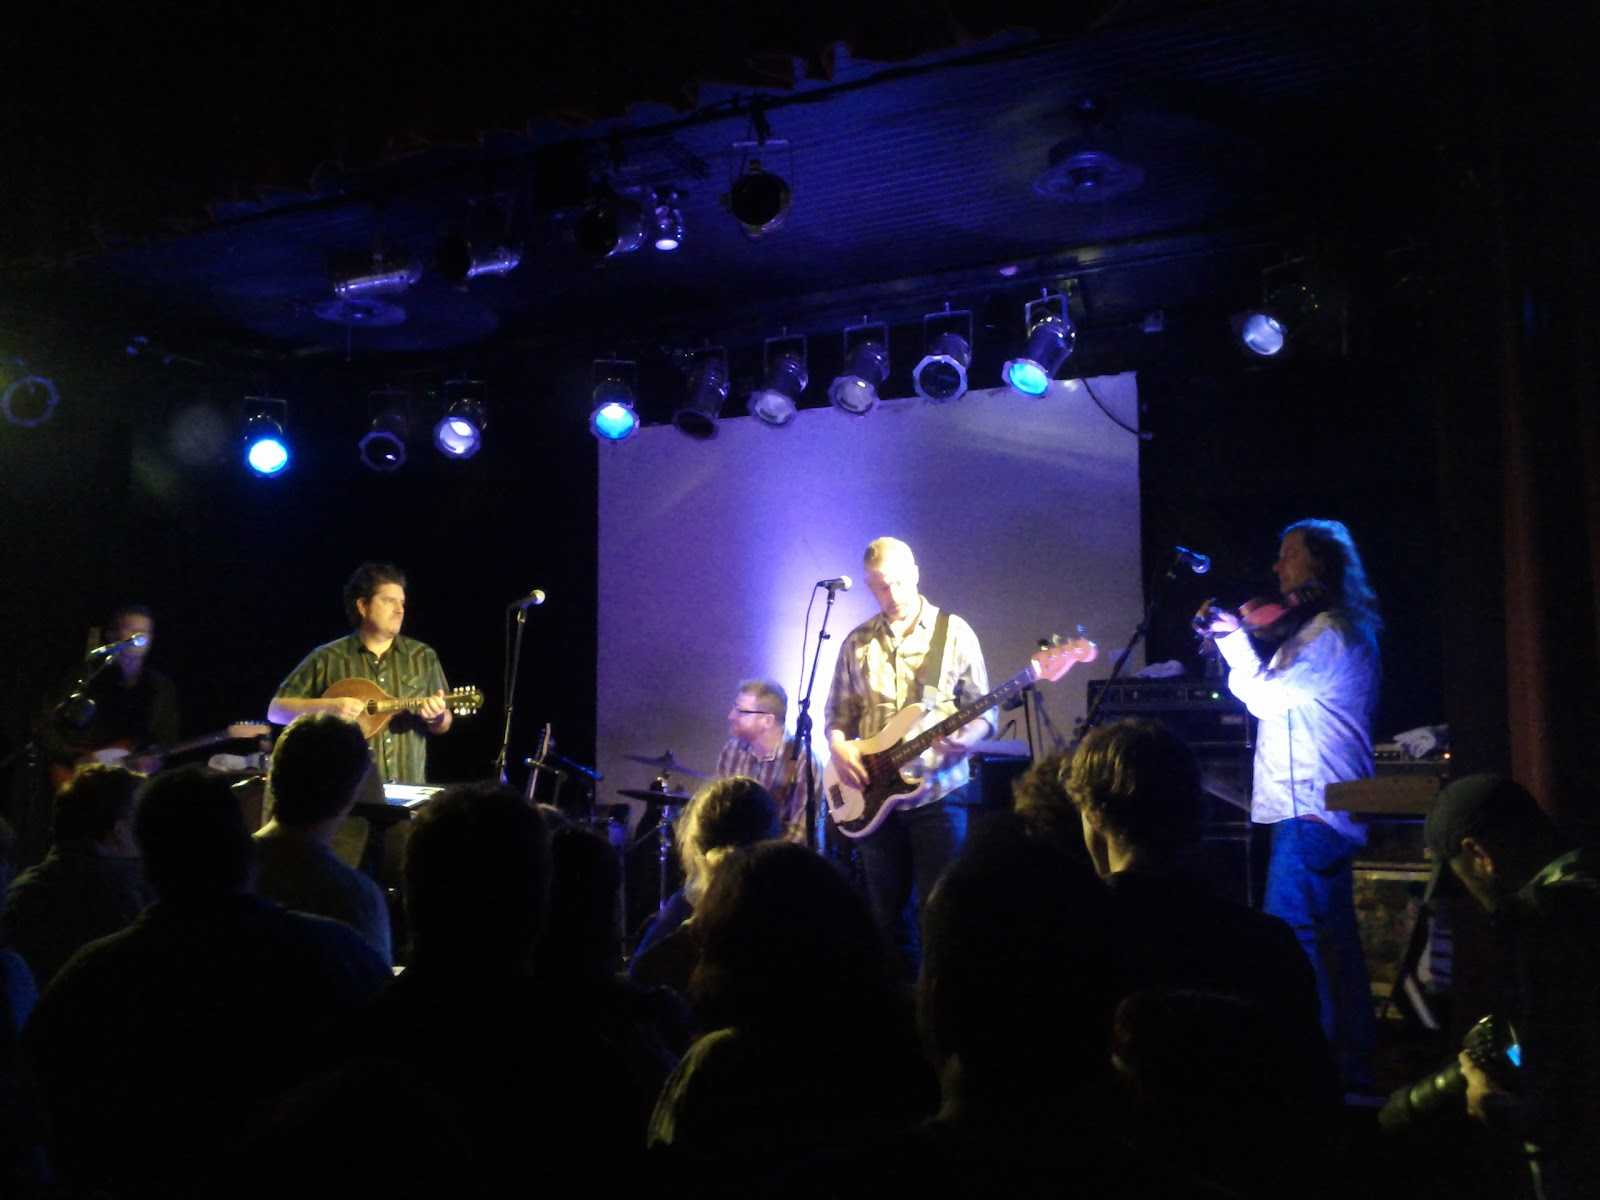 Cracker and Camper Van Beethoven - Fitzgeralds - IMG_20110519_210212.jpg